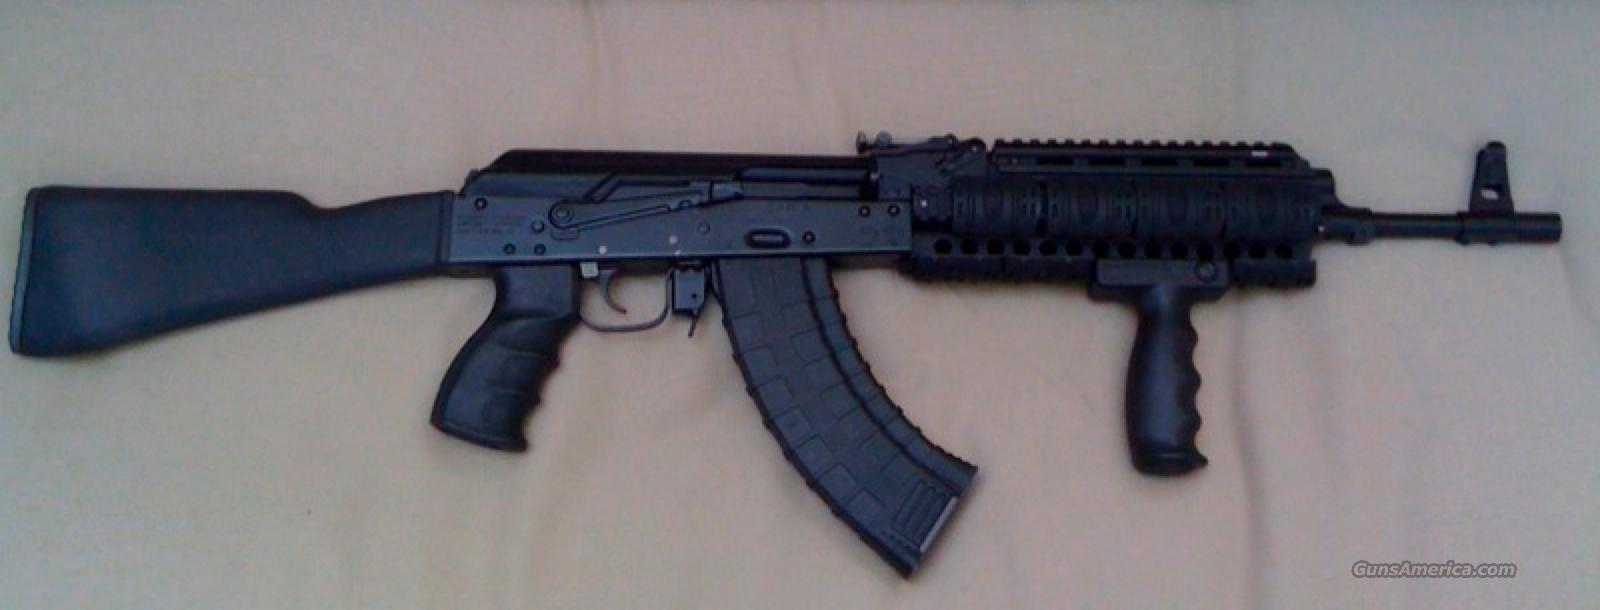 New Custom Russian Saiga AK-47  Guns > Rifles > Saiga Rifles